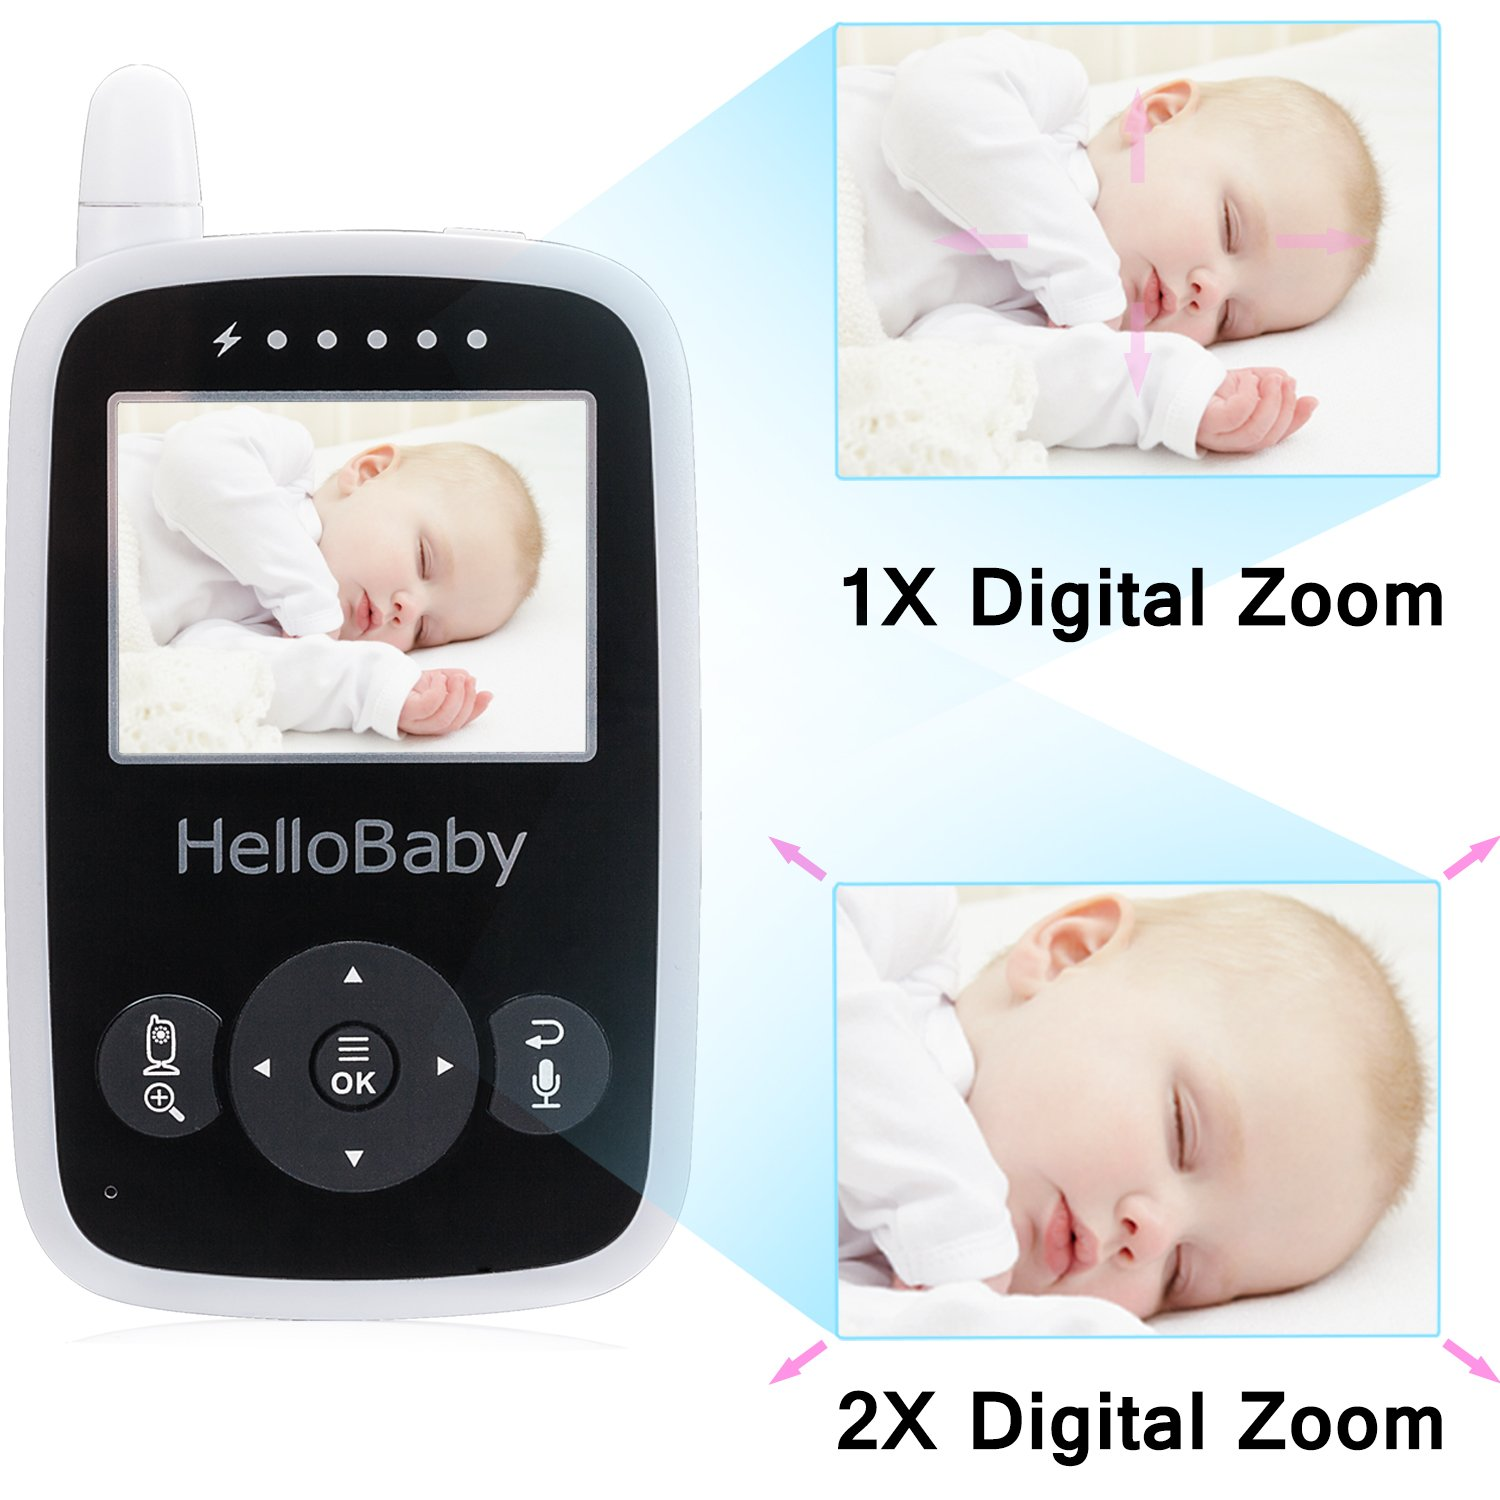 Hello Baby Wireless Video Baby Monitor with Digital Camera HB24, Night Vision Temperature Monitoring & 2 Way Talkback System, White by HelloBaby (Image #7)